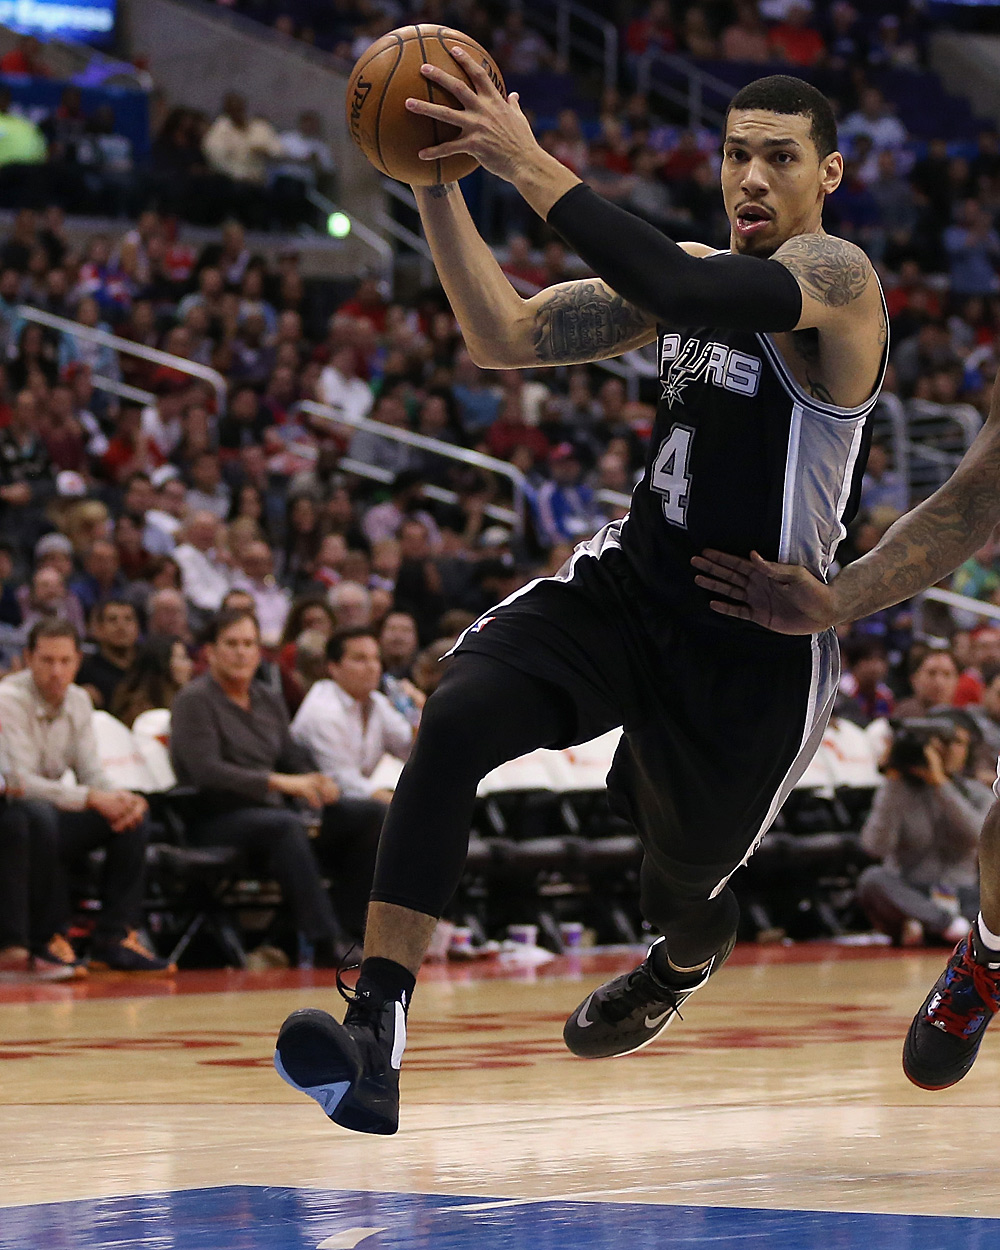 Danny Green (Shooting Guard, 7,4 Punkte, 38 Prozent 3FG)